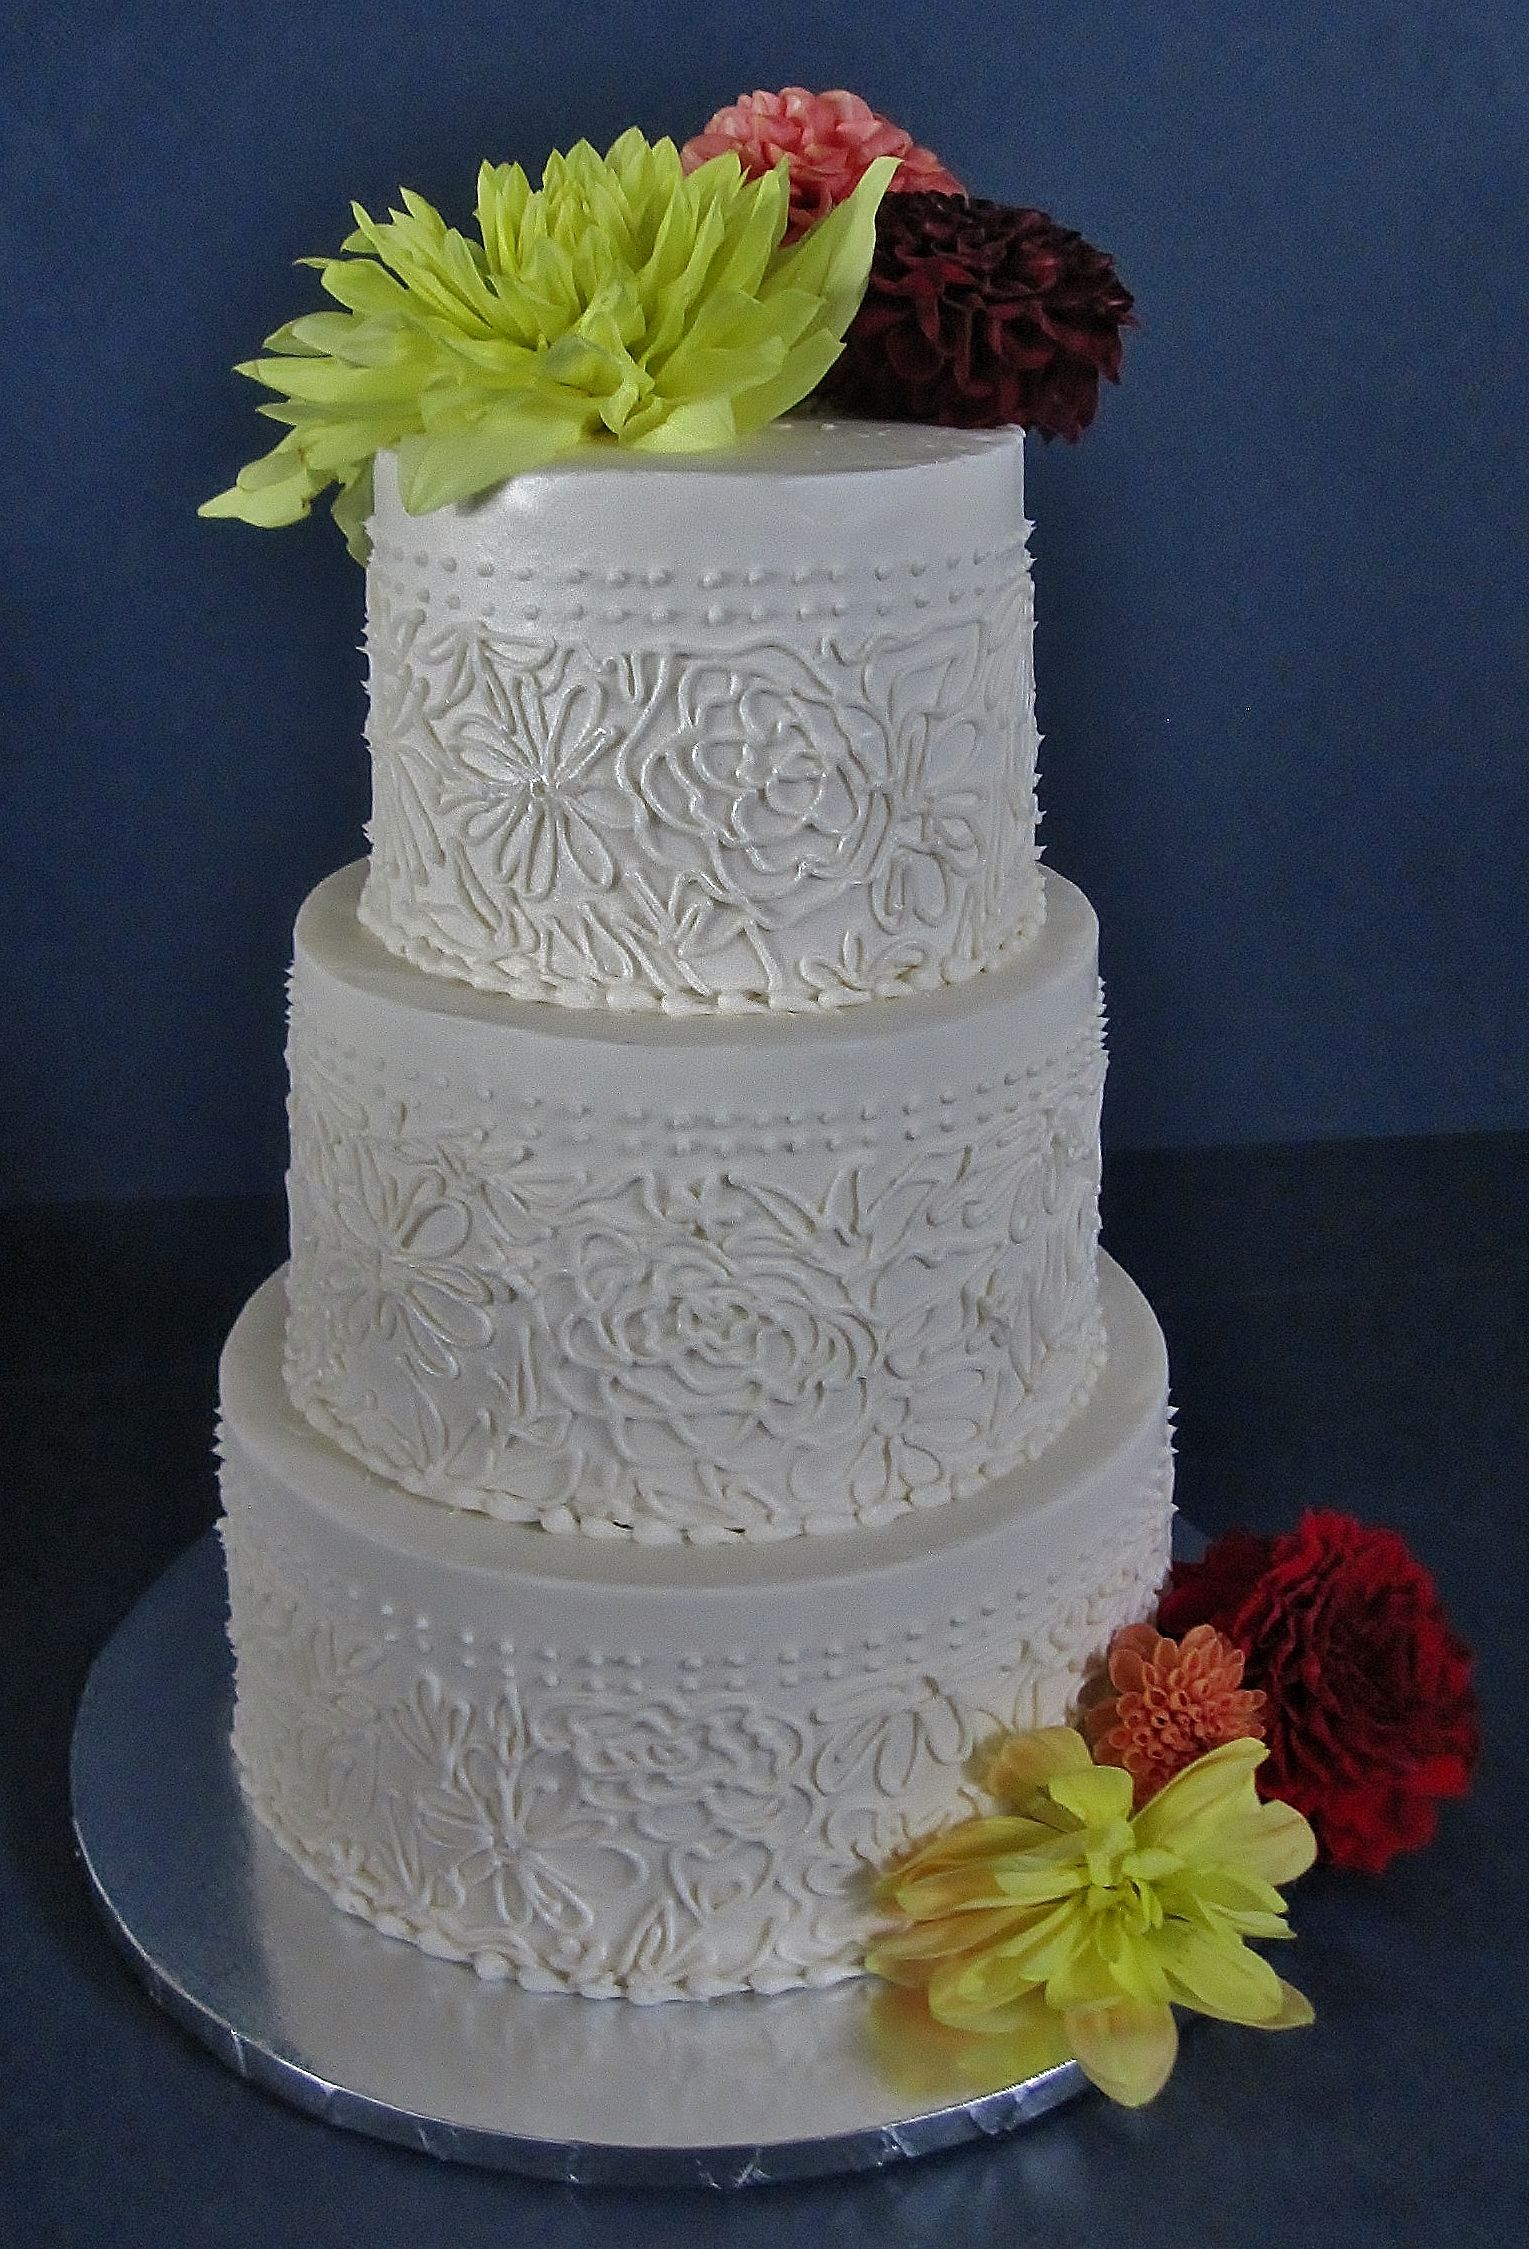 Morley's cakes Seattle Cake, Wedding cakes, How to